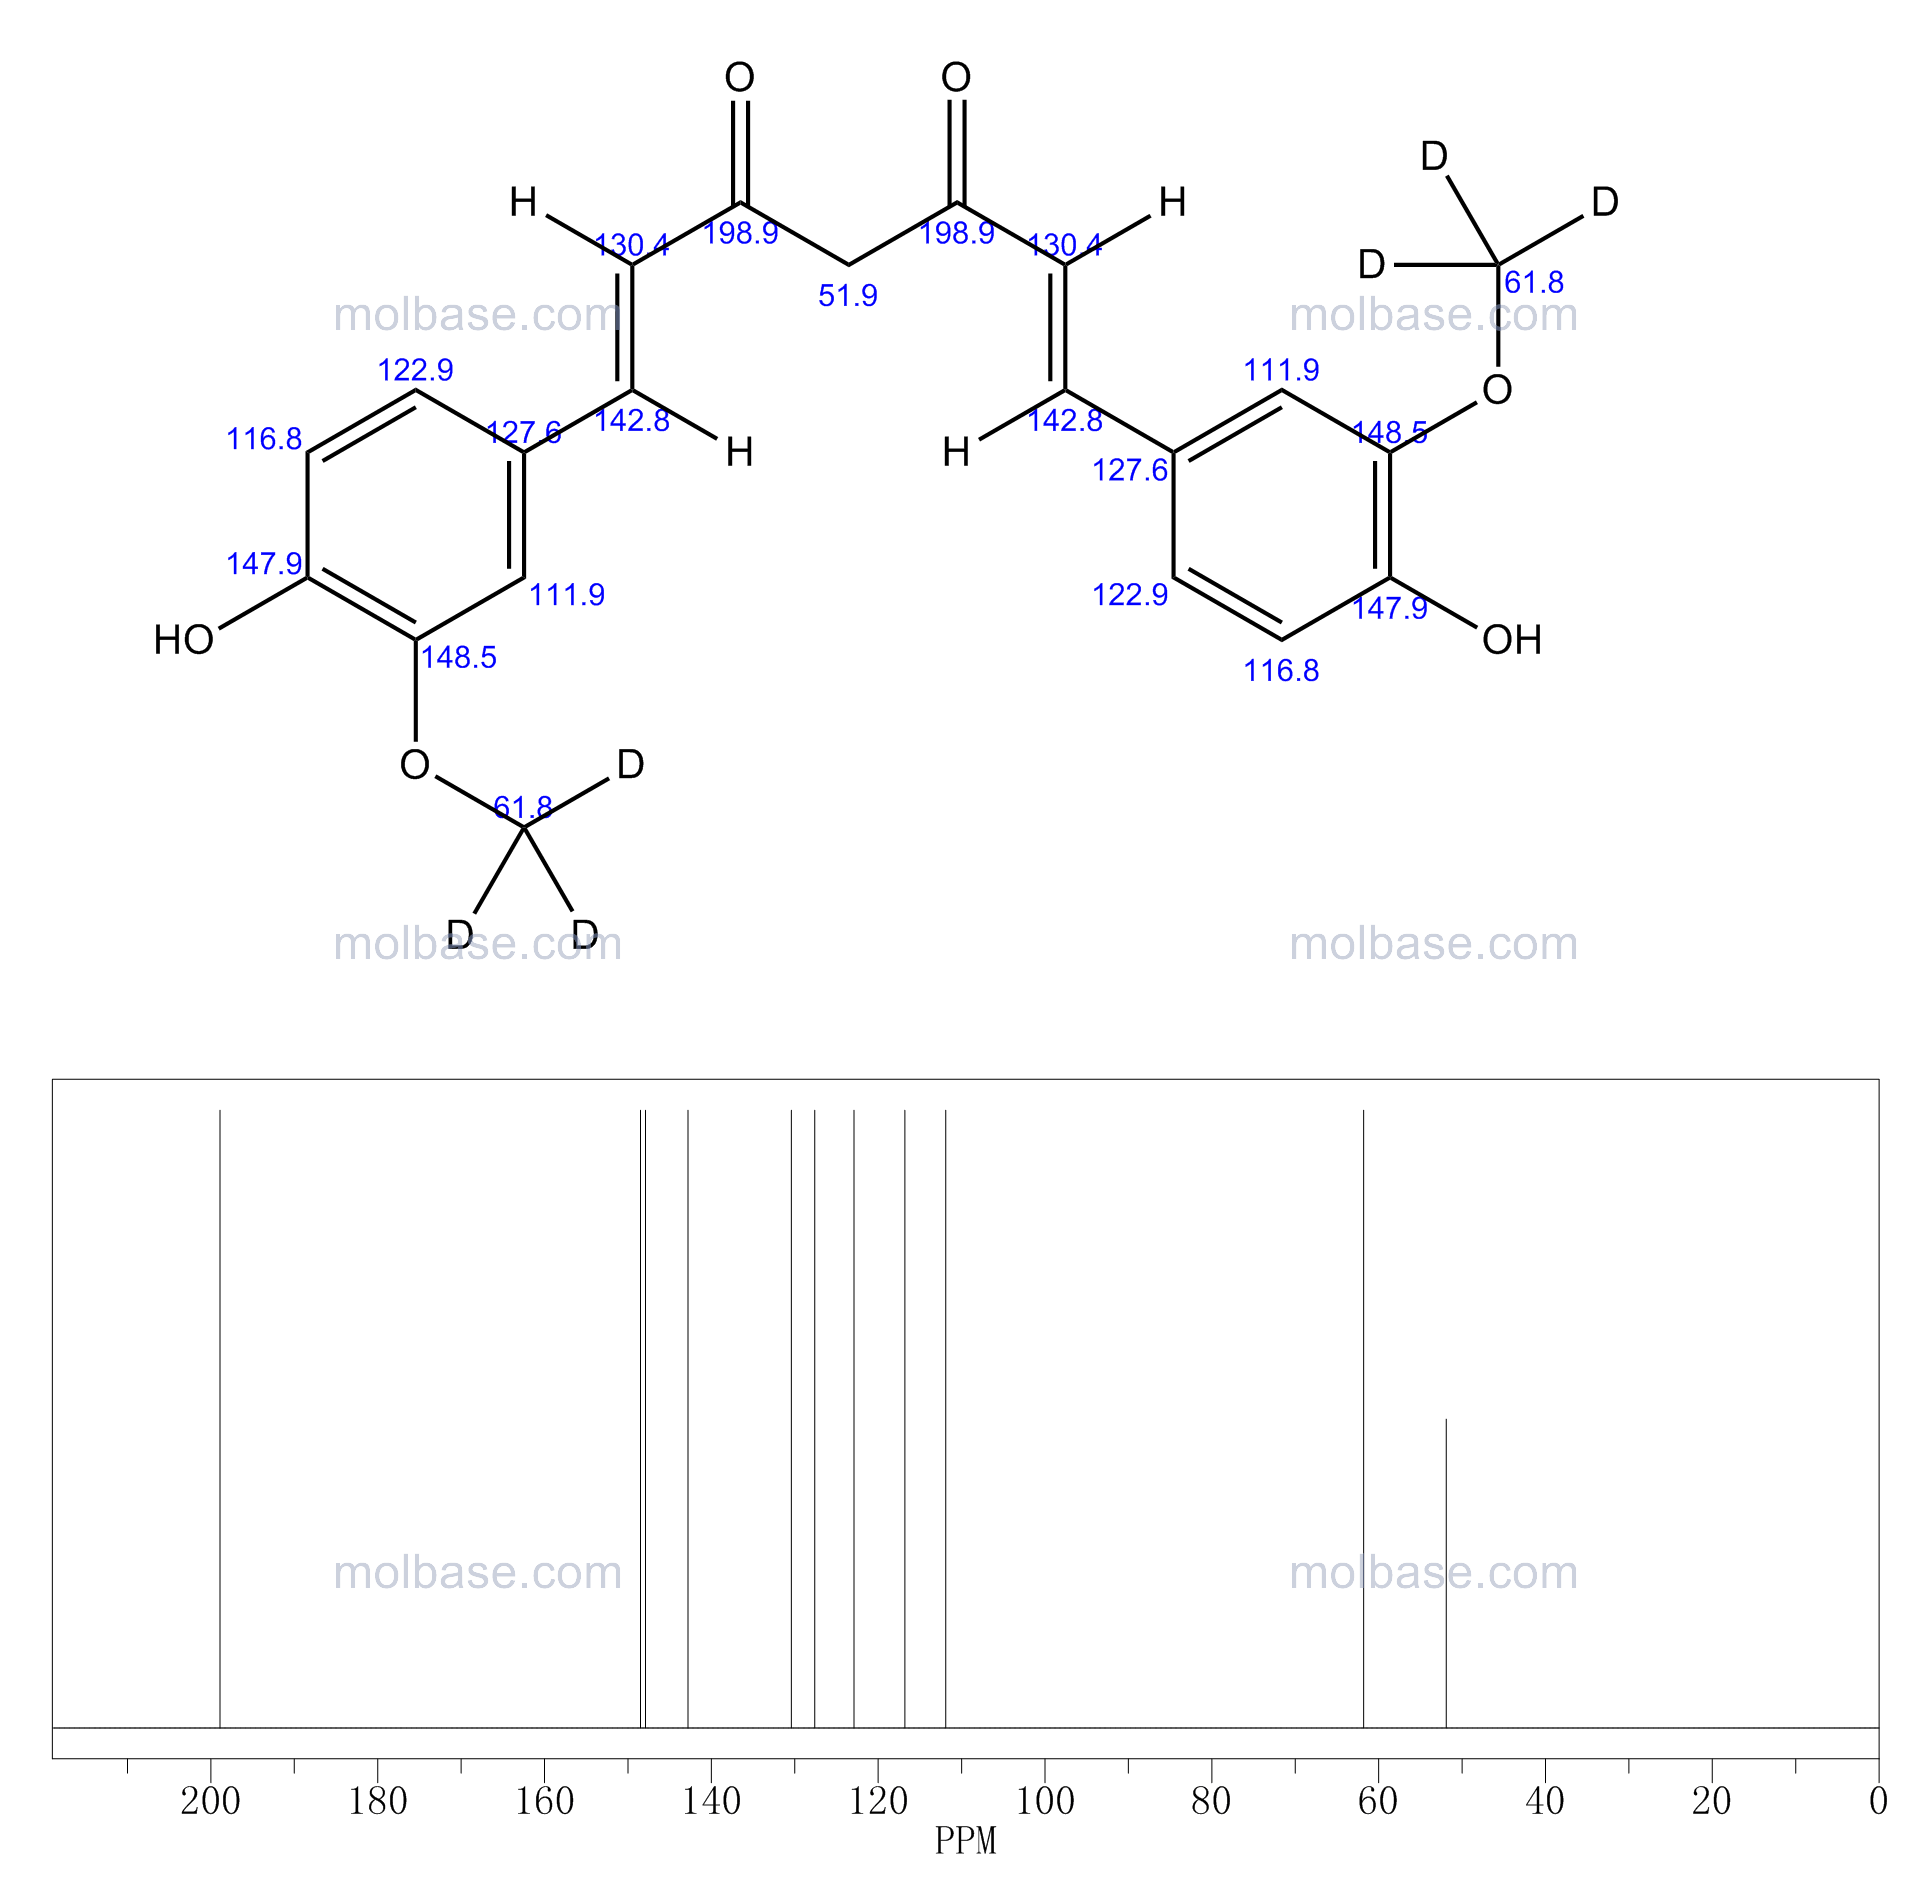 (1E,6E)-1,7-bis[4-hydroxy-3-(trideuteriomethoxy)phenyl]hepta-1,6-diene-3,5-dione NMR spectra analysis, Chemical CAS NO. 1246833-26-0 NMR spectral analysis, (1E,6E)-1,7-bis[4-hydroxy-3-(trideuteriomethoxy)phenyl]hepta-1,6-diene-3,5-dione C-NMR spectrum